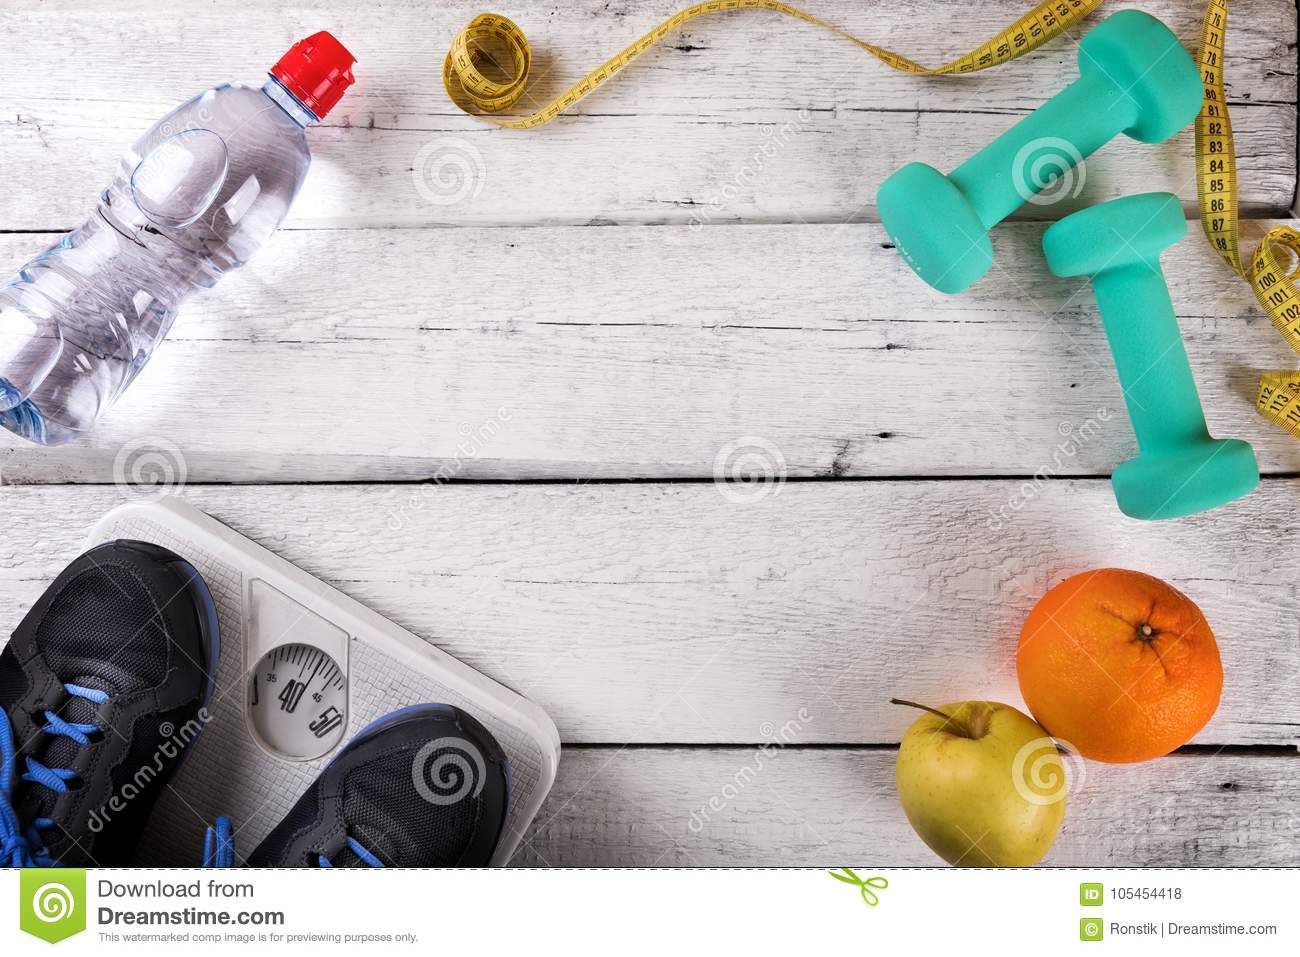 Workout items on white wooden gym floor with copy space